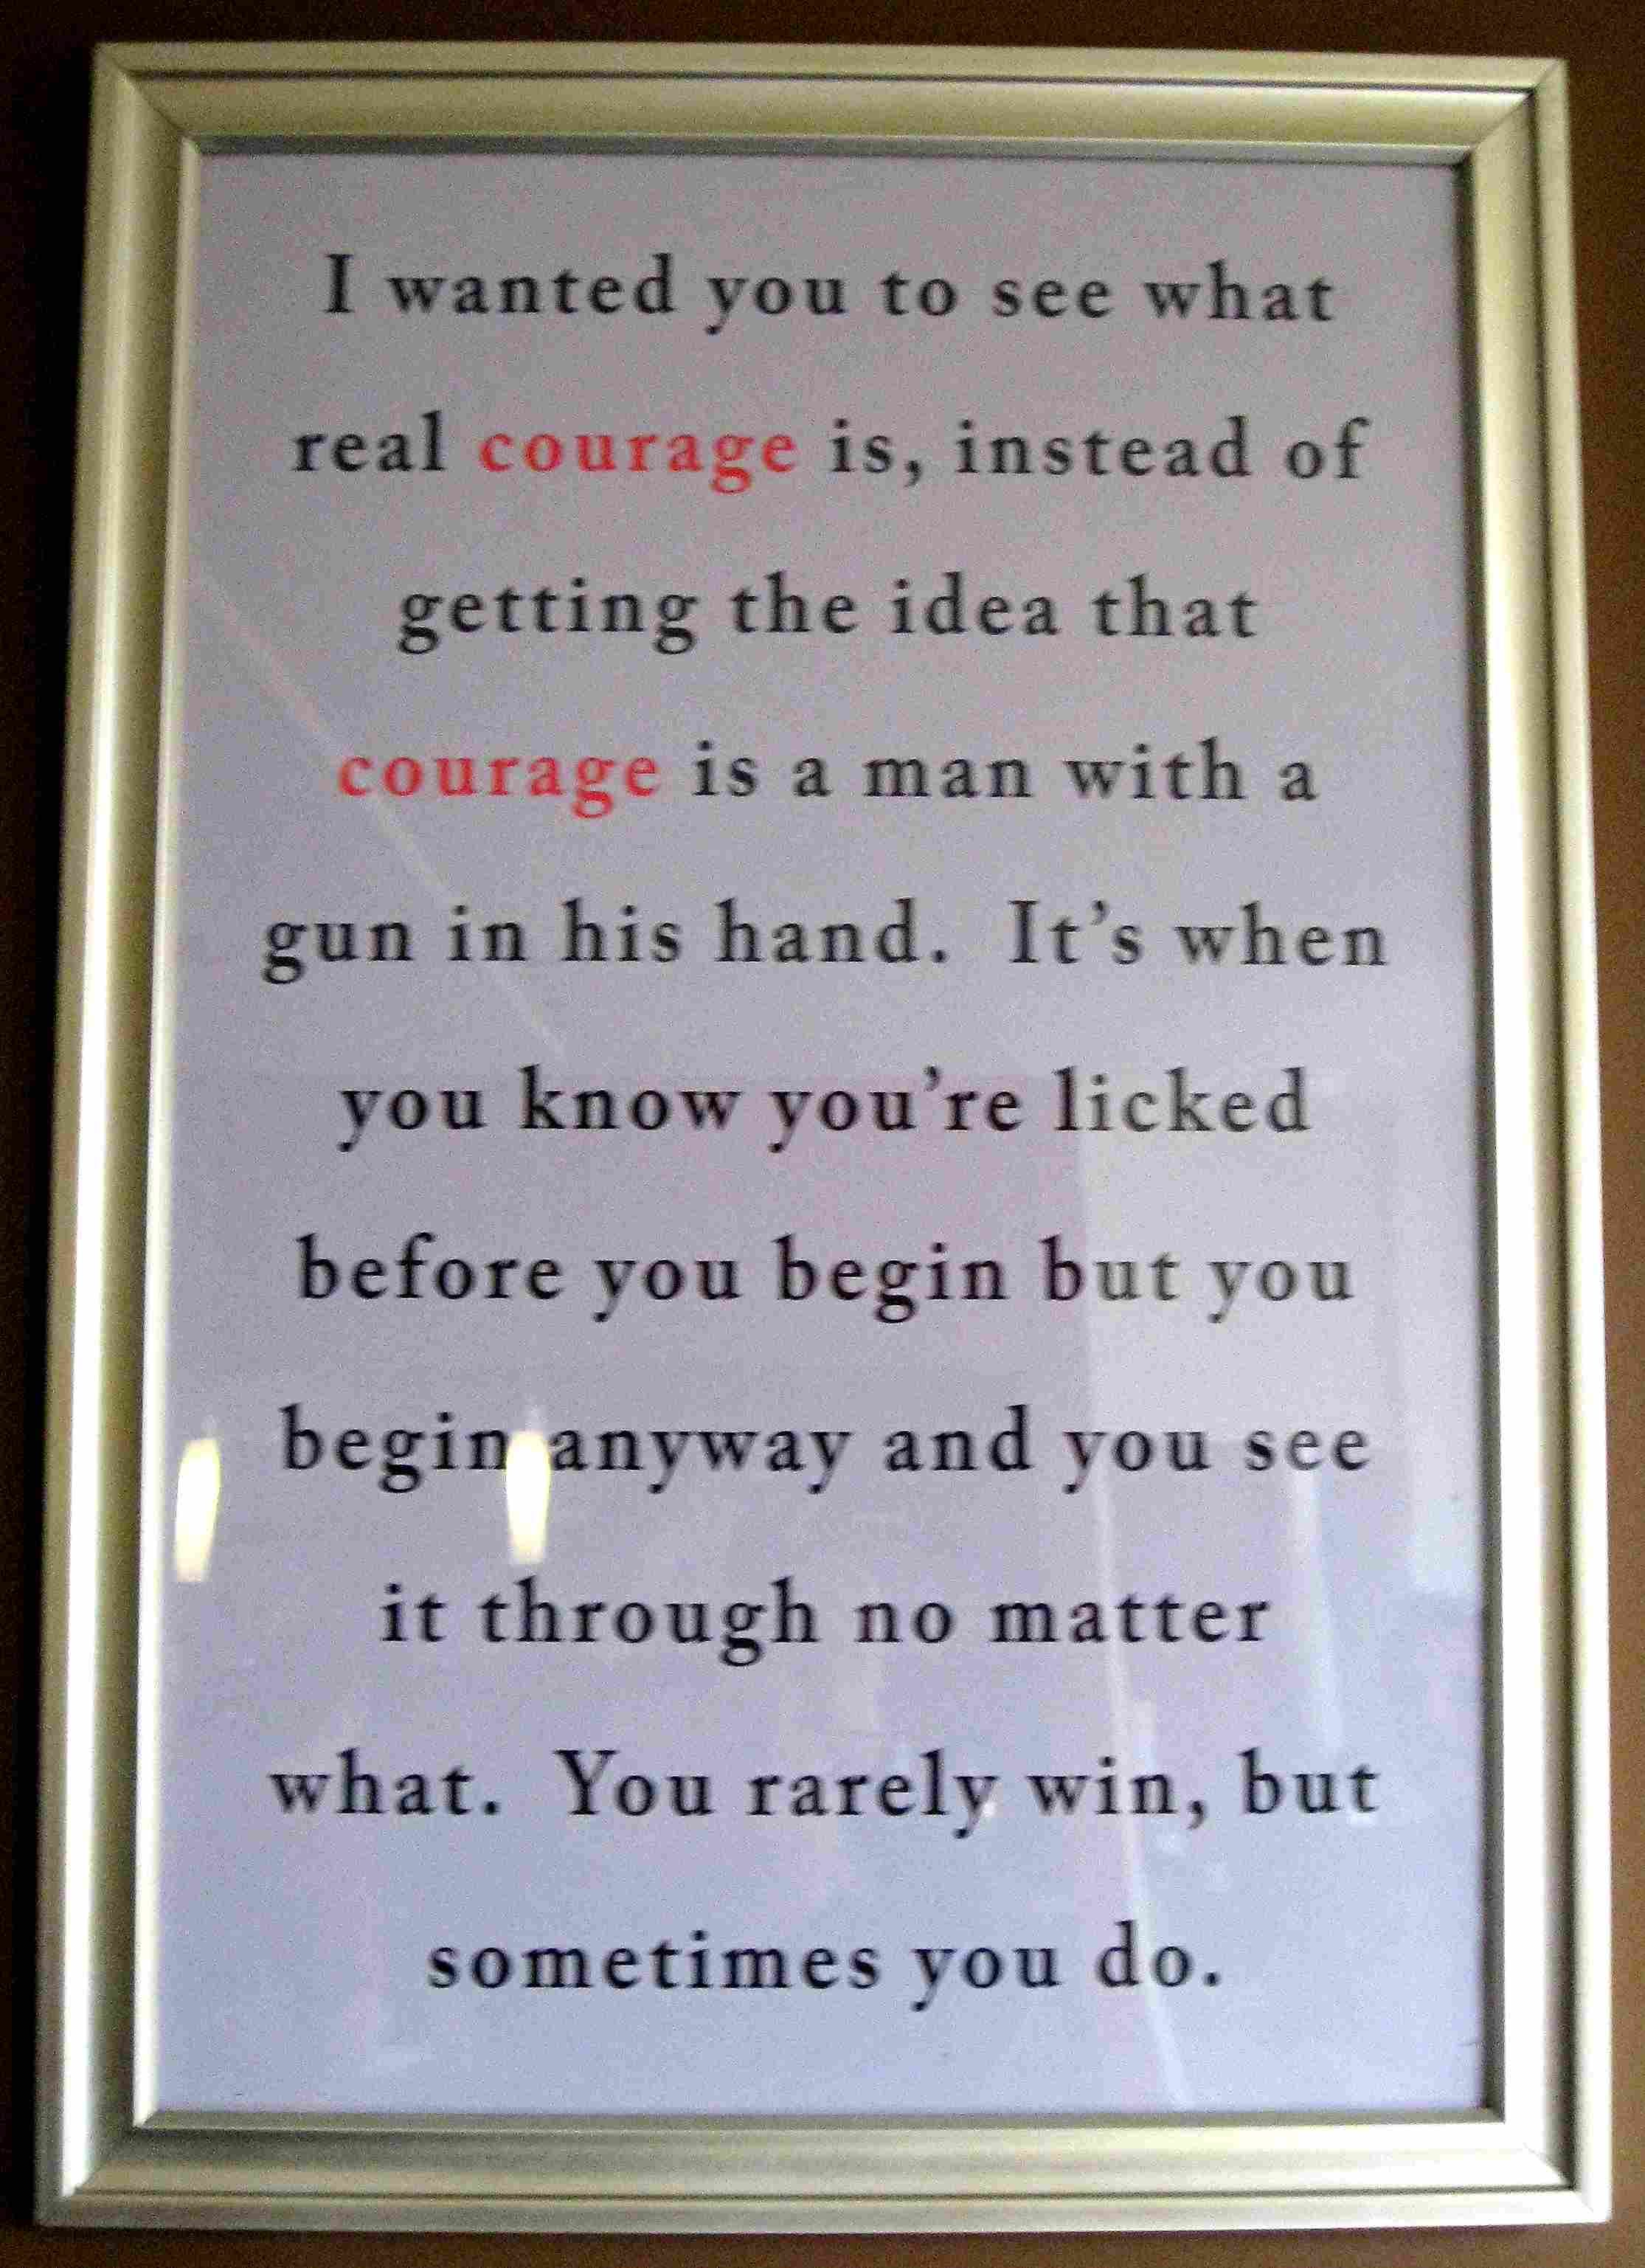 atticus finch quote on courage to kill a mockingbird baby hess atticus finch quote on courage to kill a mockingbird